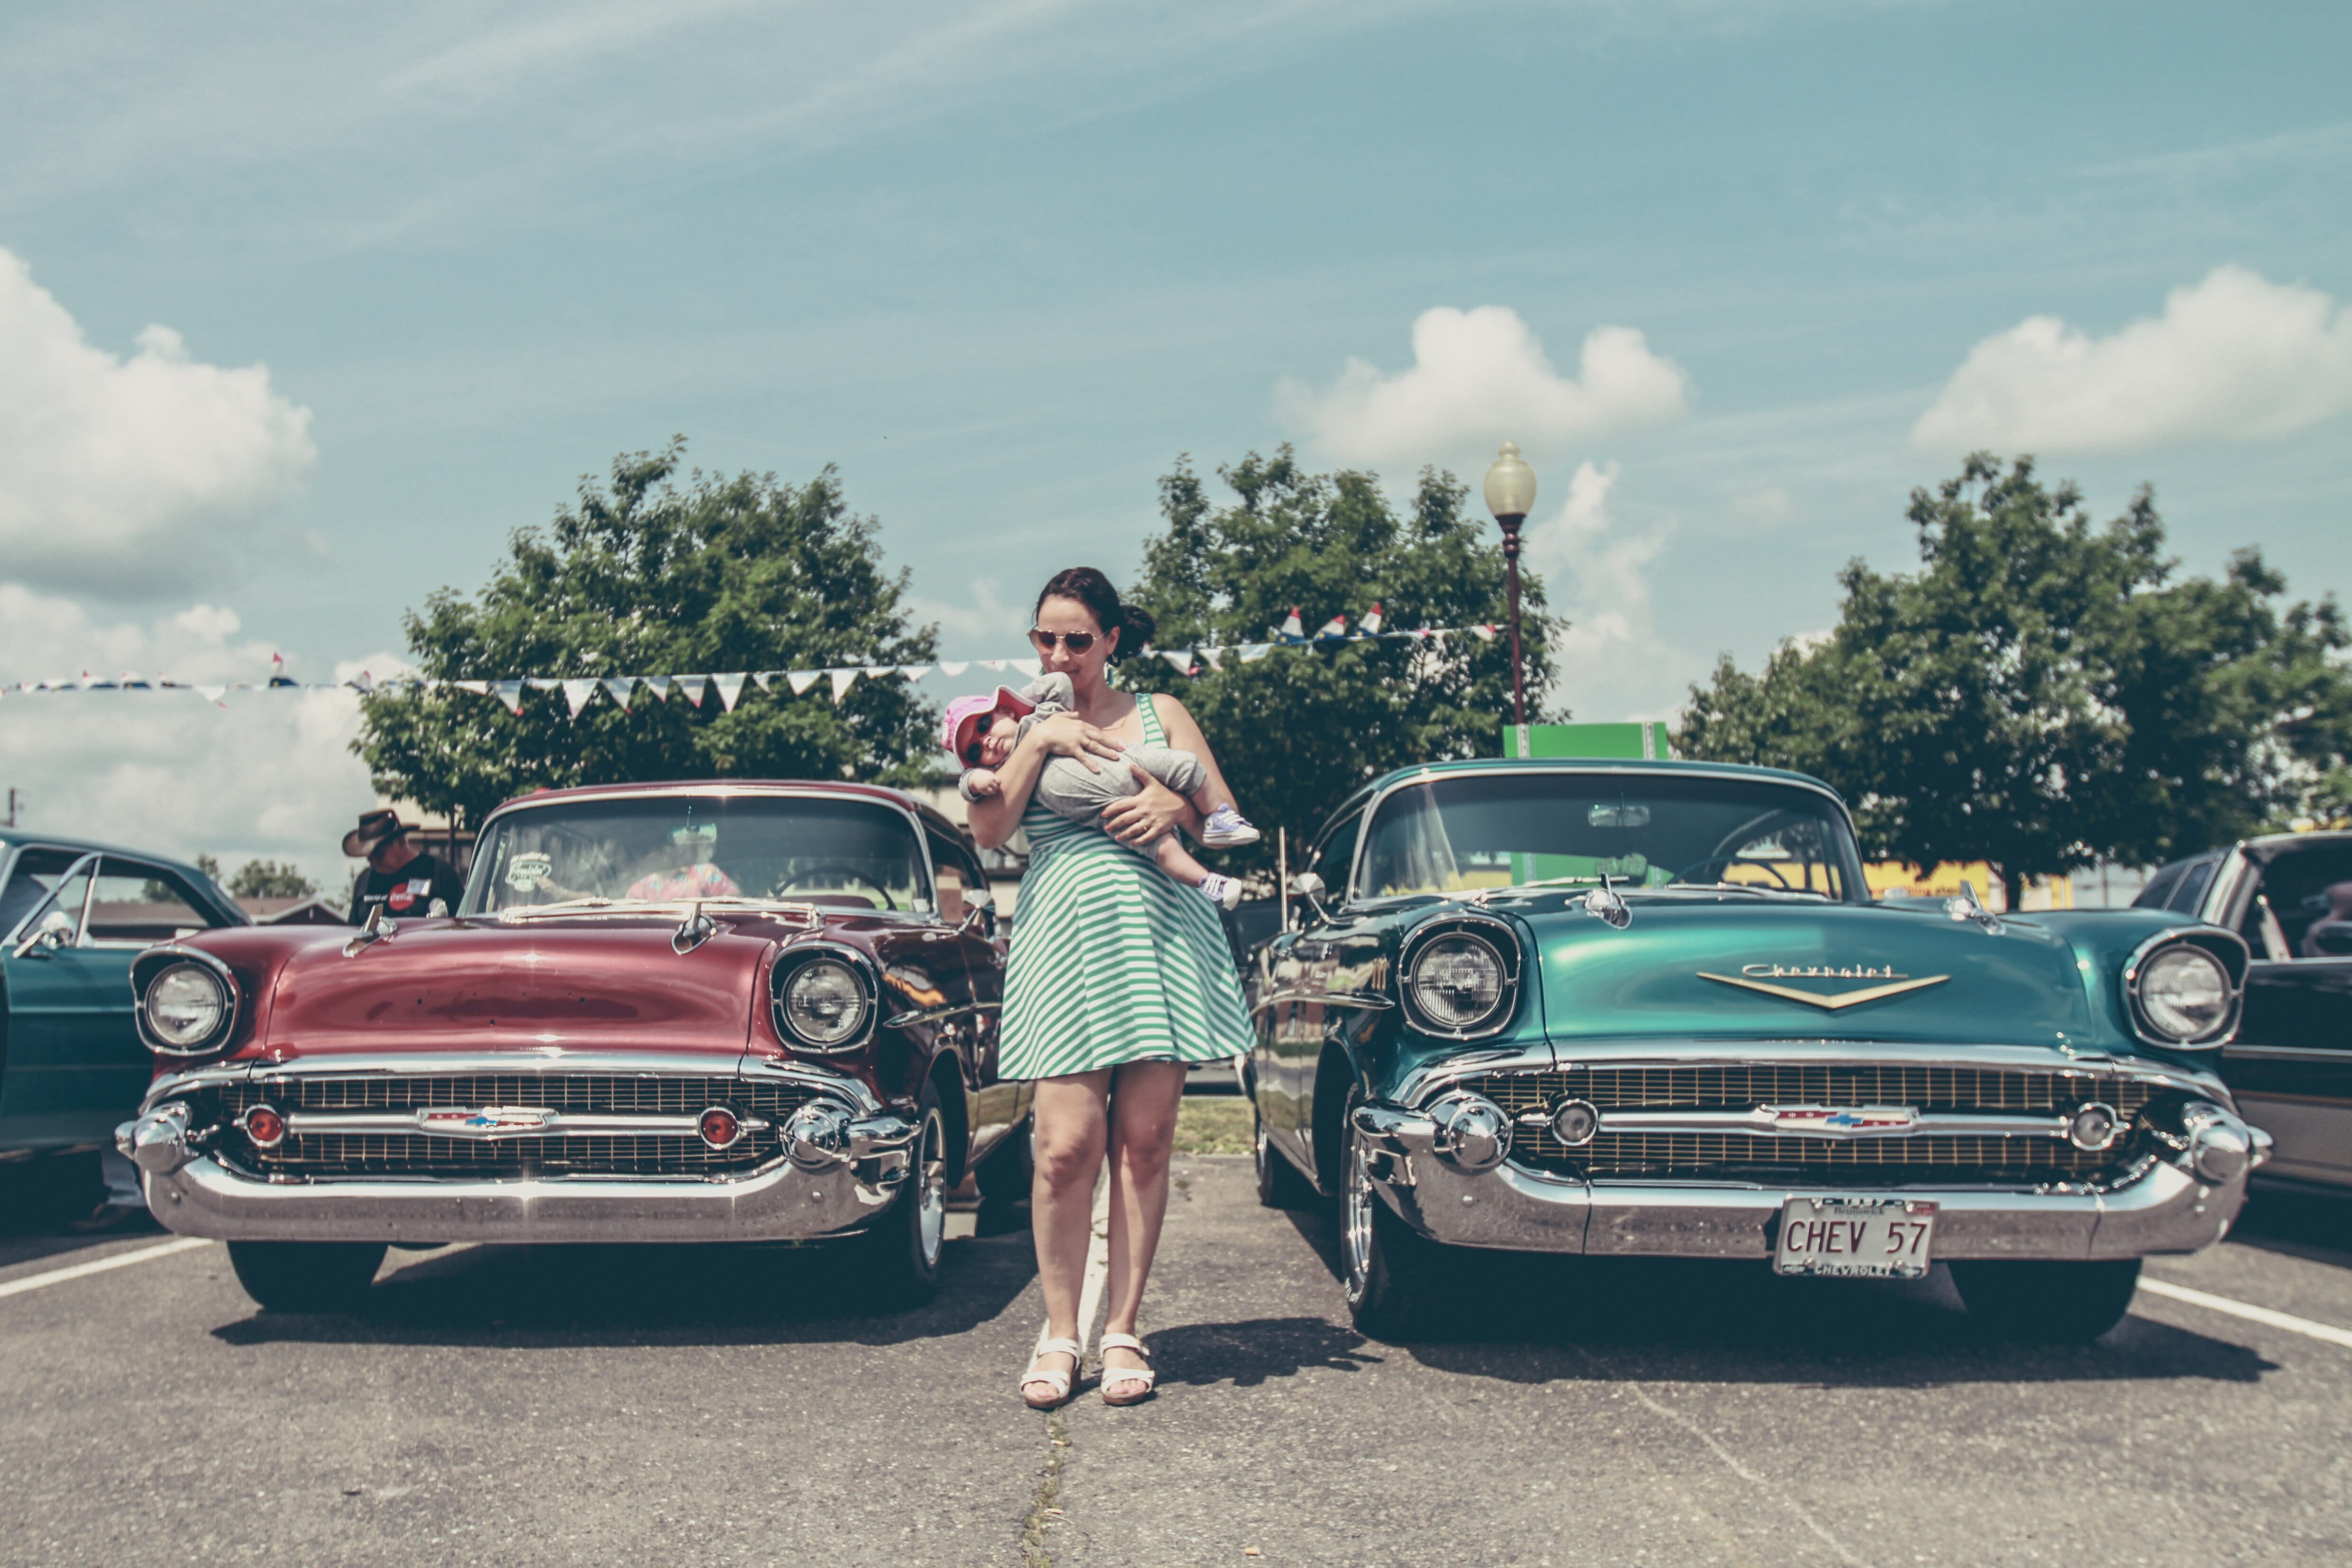 Lady and her son walking through a car show.